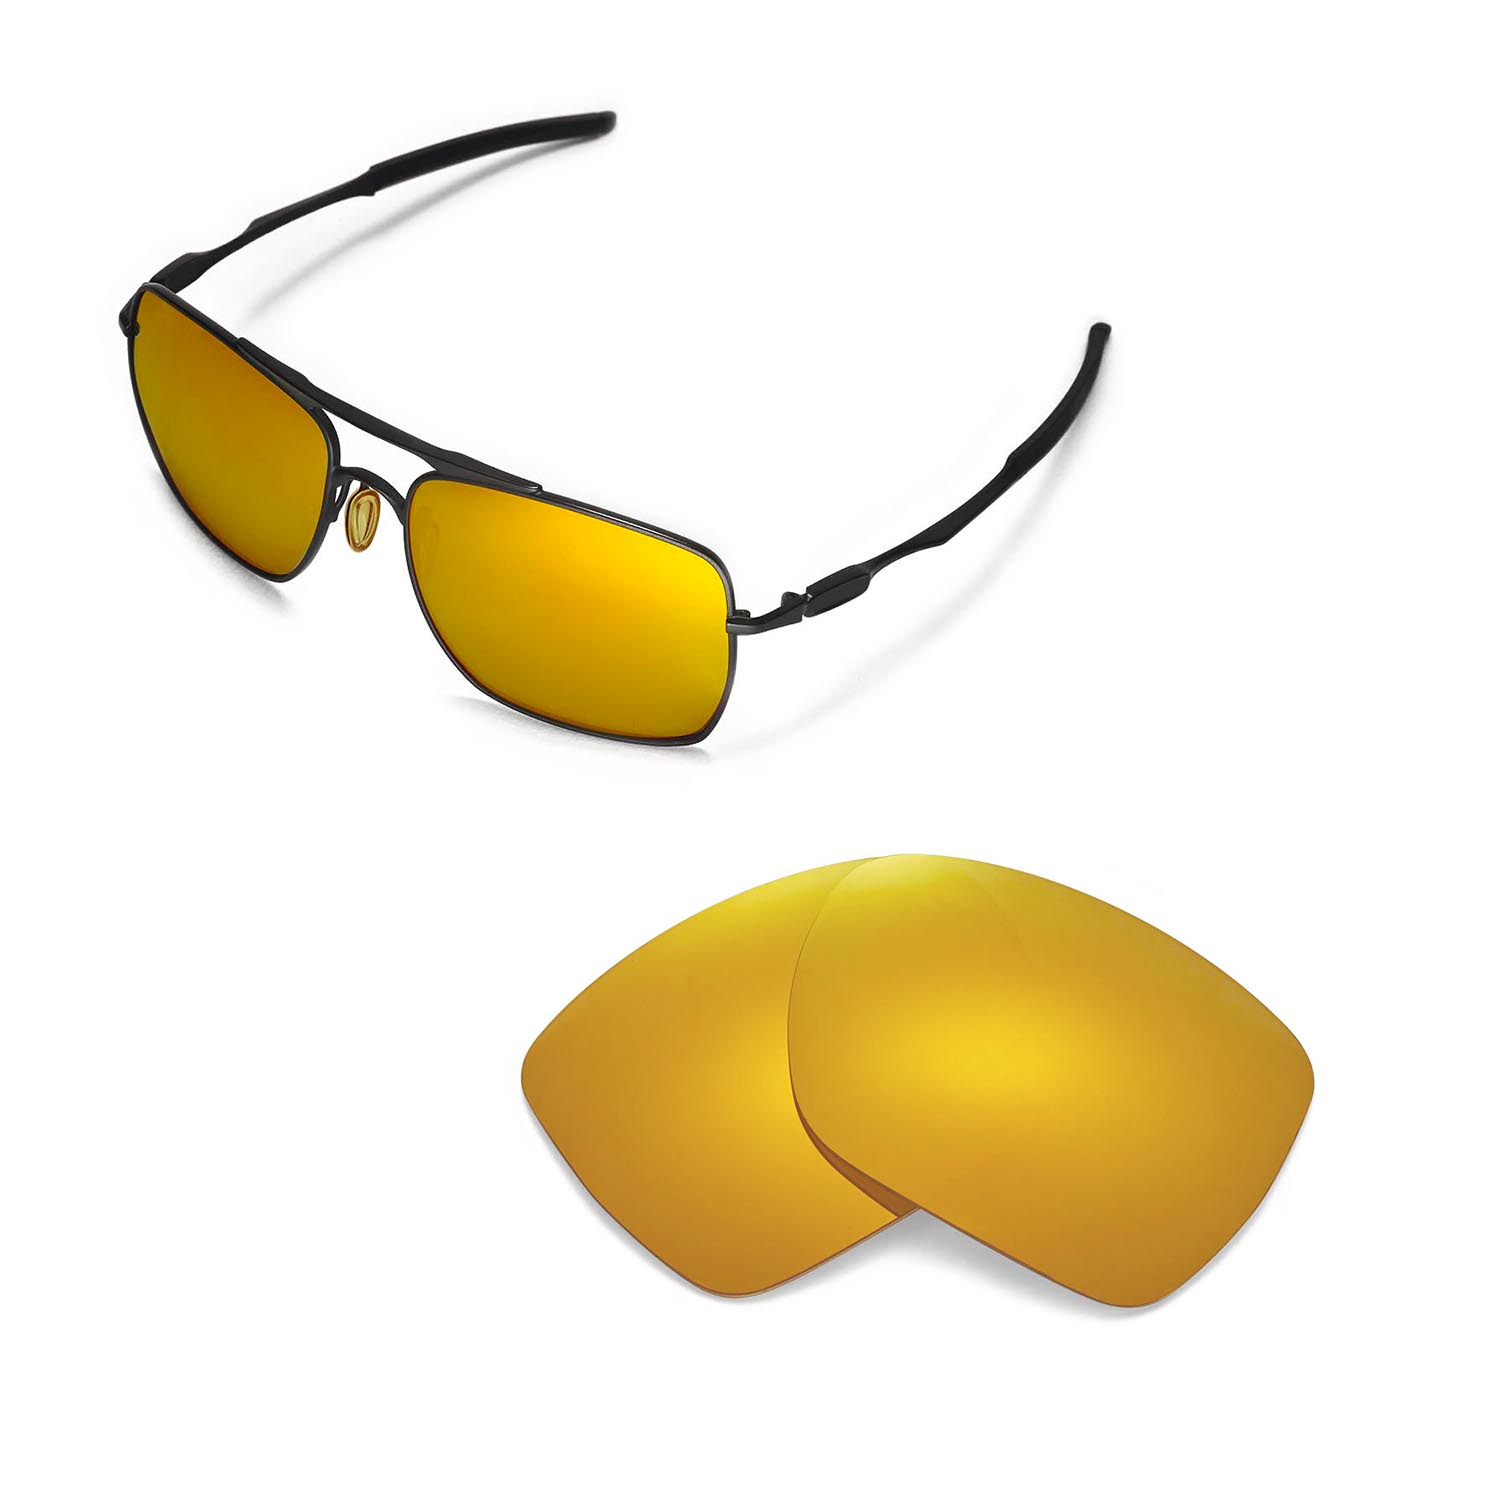 8d67f2012a Details about New WL 24K Gold Replacement Lenses For Oakley Deviation  Sunglasses